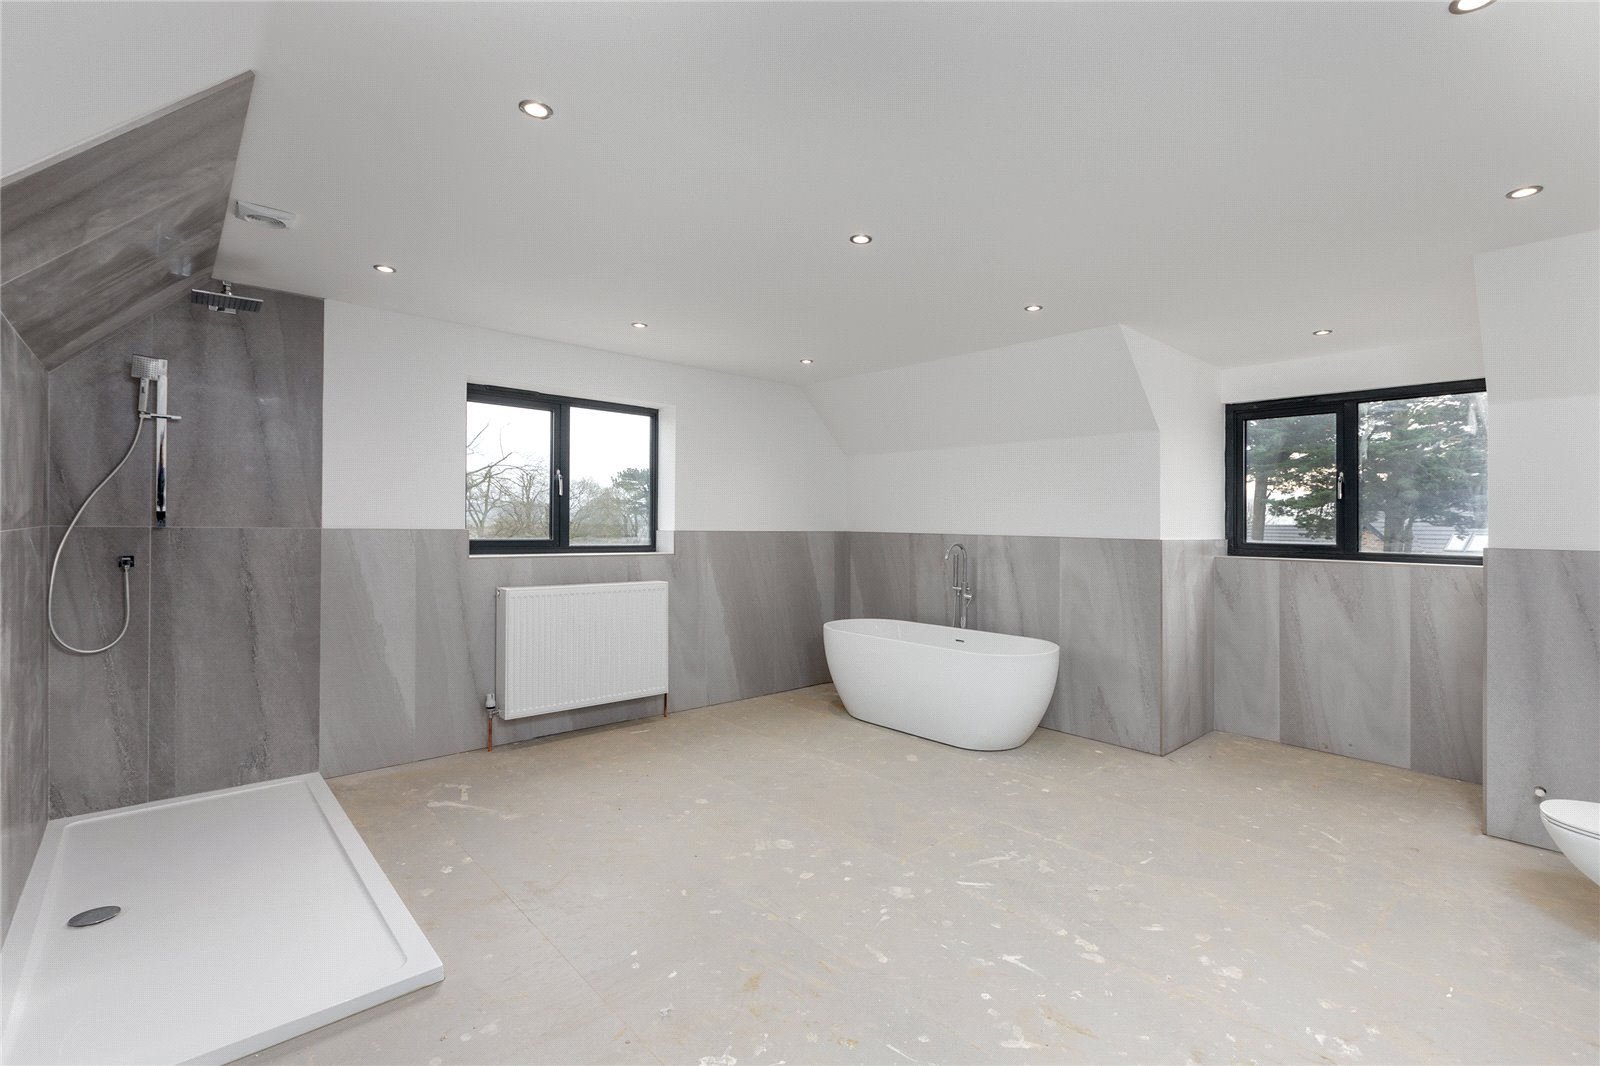 5 bed house for sale in Upsall Grange Gardens, Upsall  - Property Image 9